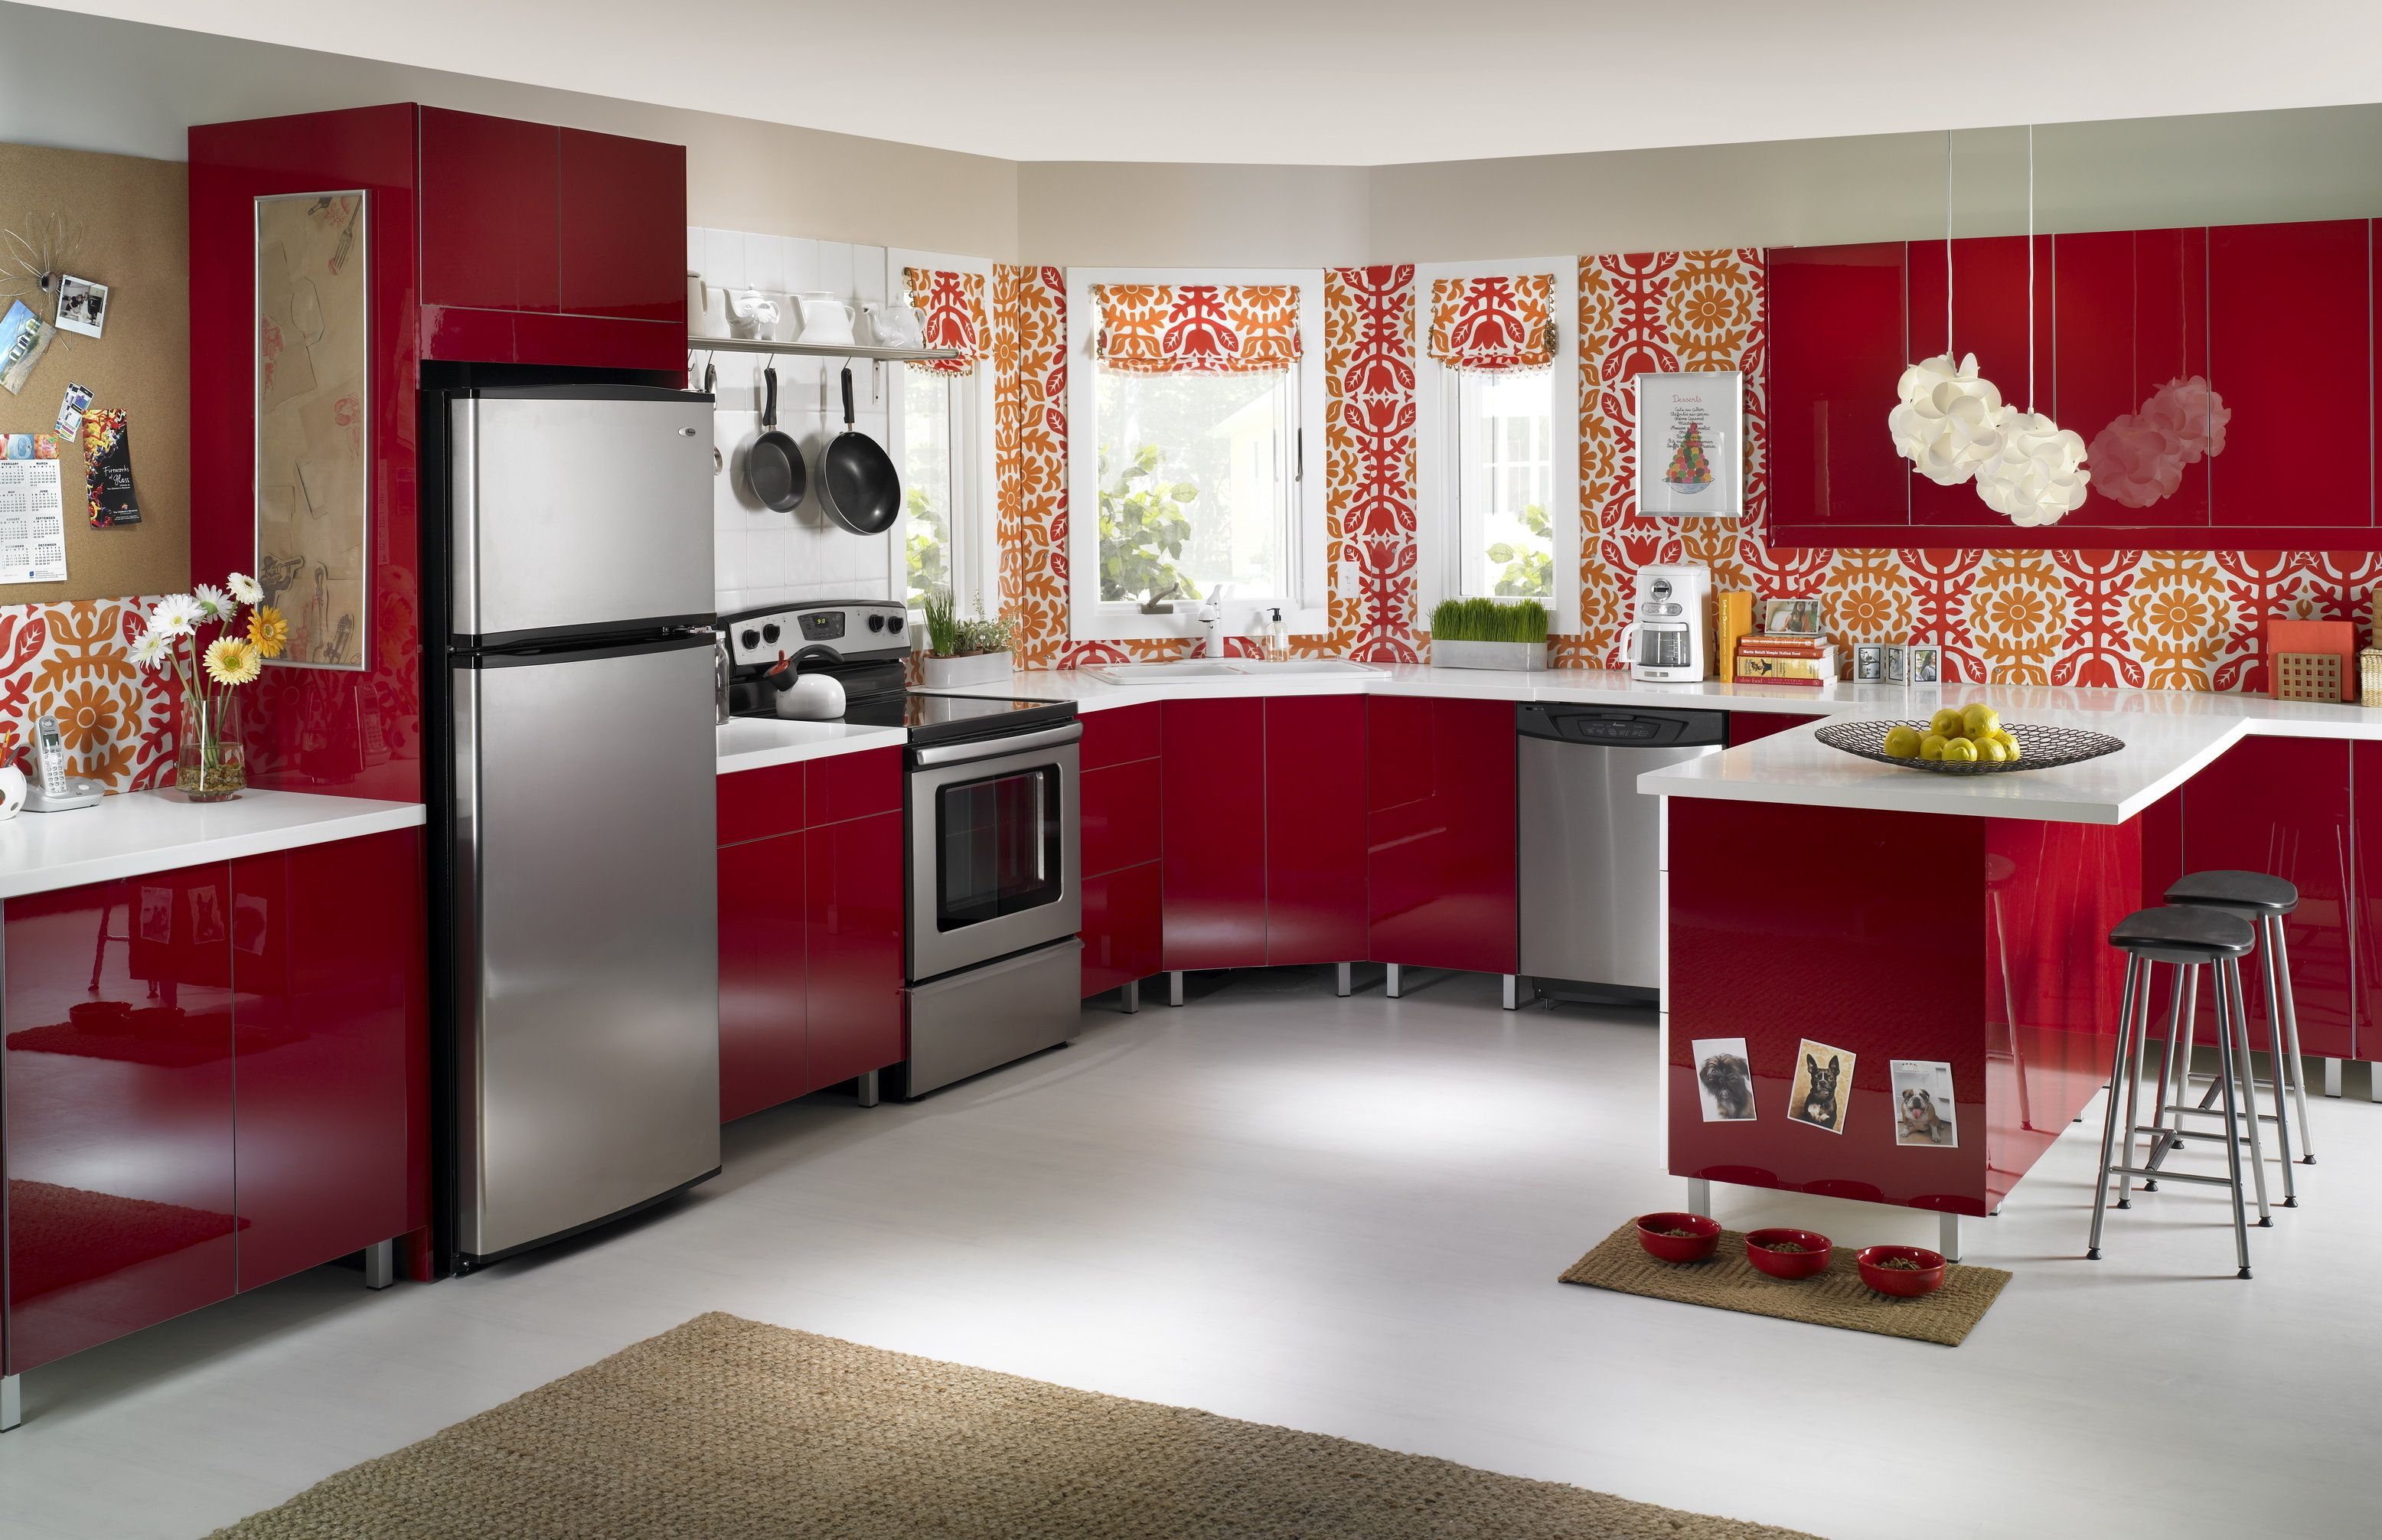 Wonderful red furniture kitchen interior design style color with